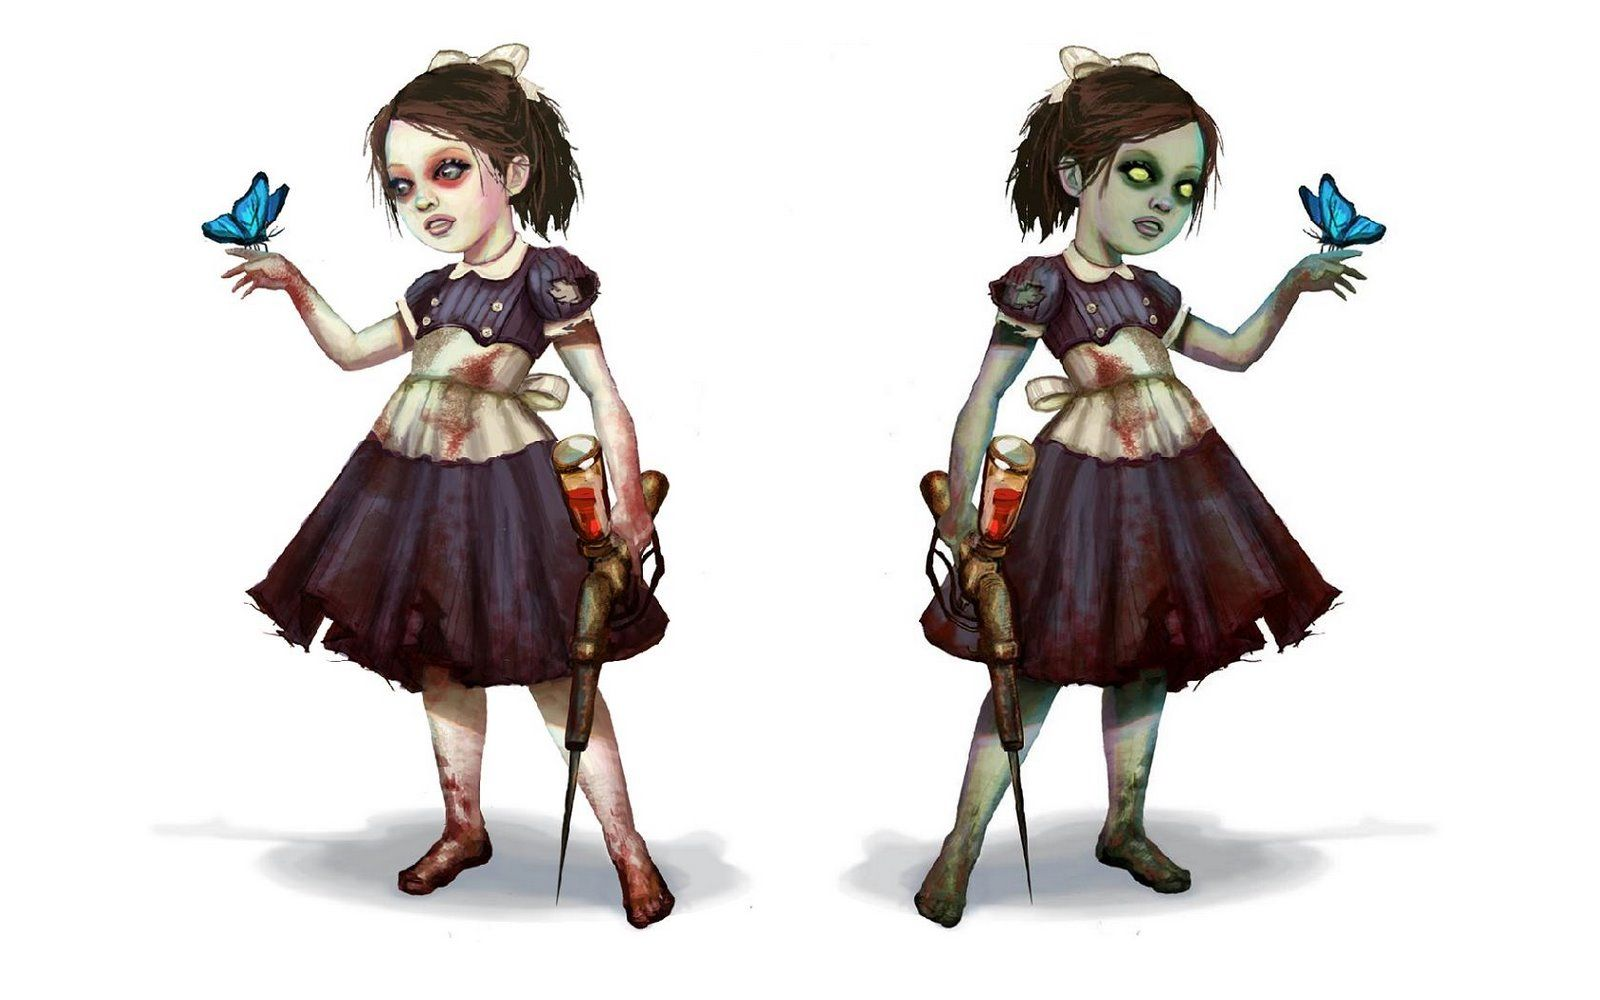 little sister 1000+ images about Bioshock on Pinterest | Bioshock rapture, Little sisters and Bioshock 2